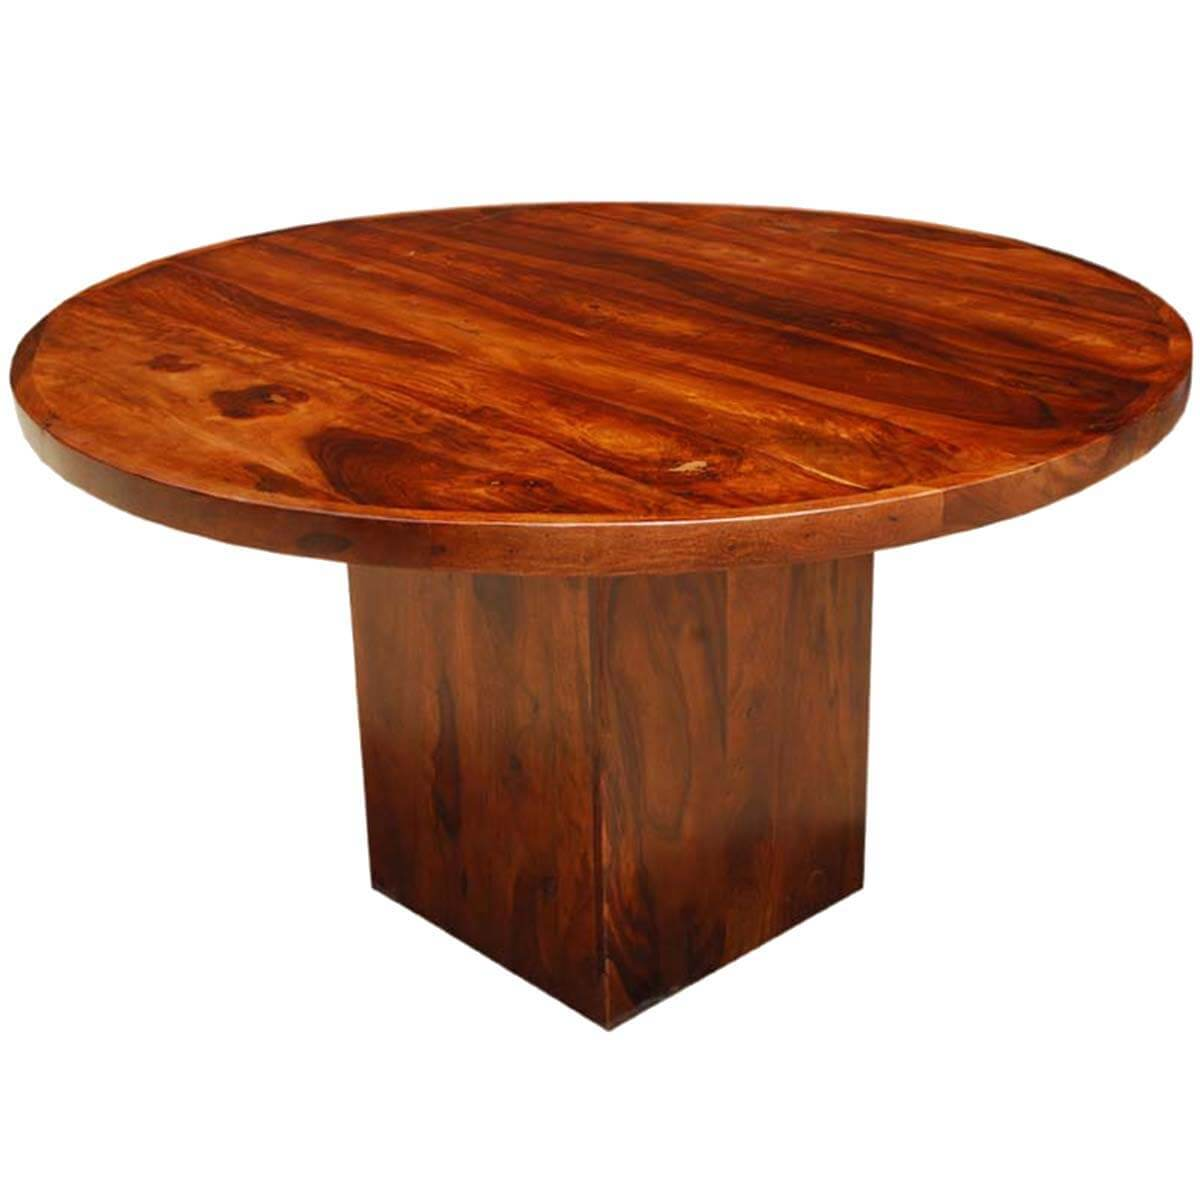 Solid wood rustic round dining table w square pedestal for Pedestal table